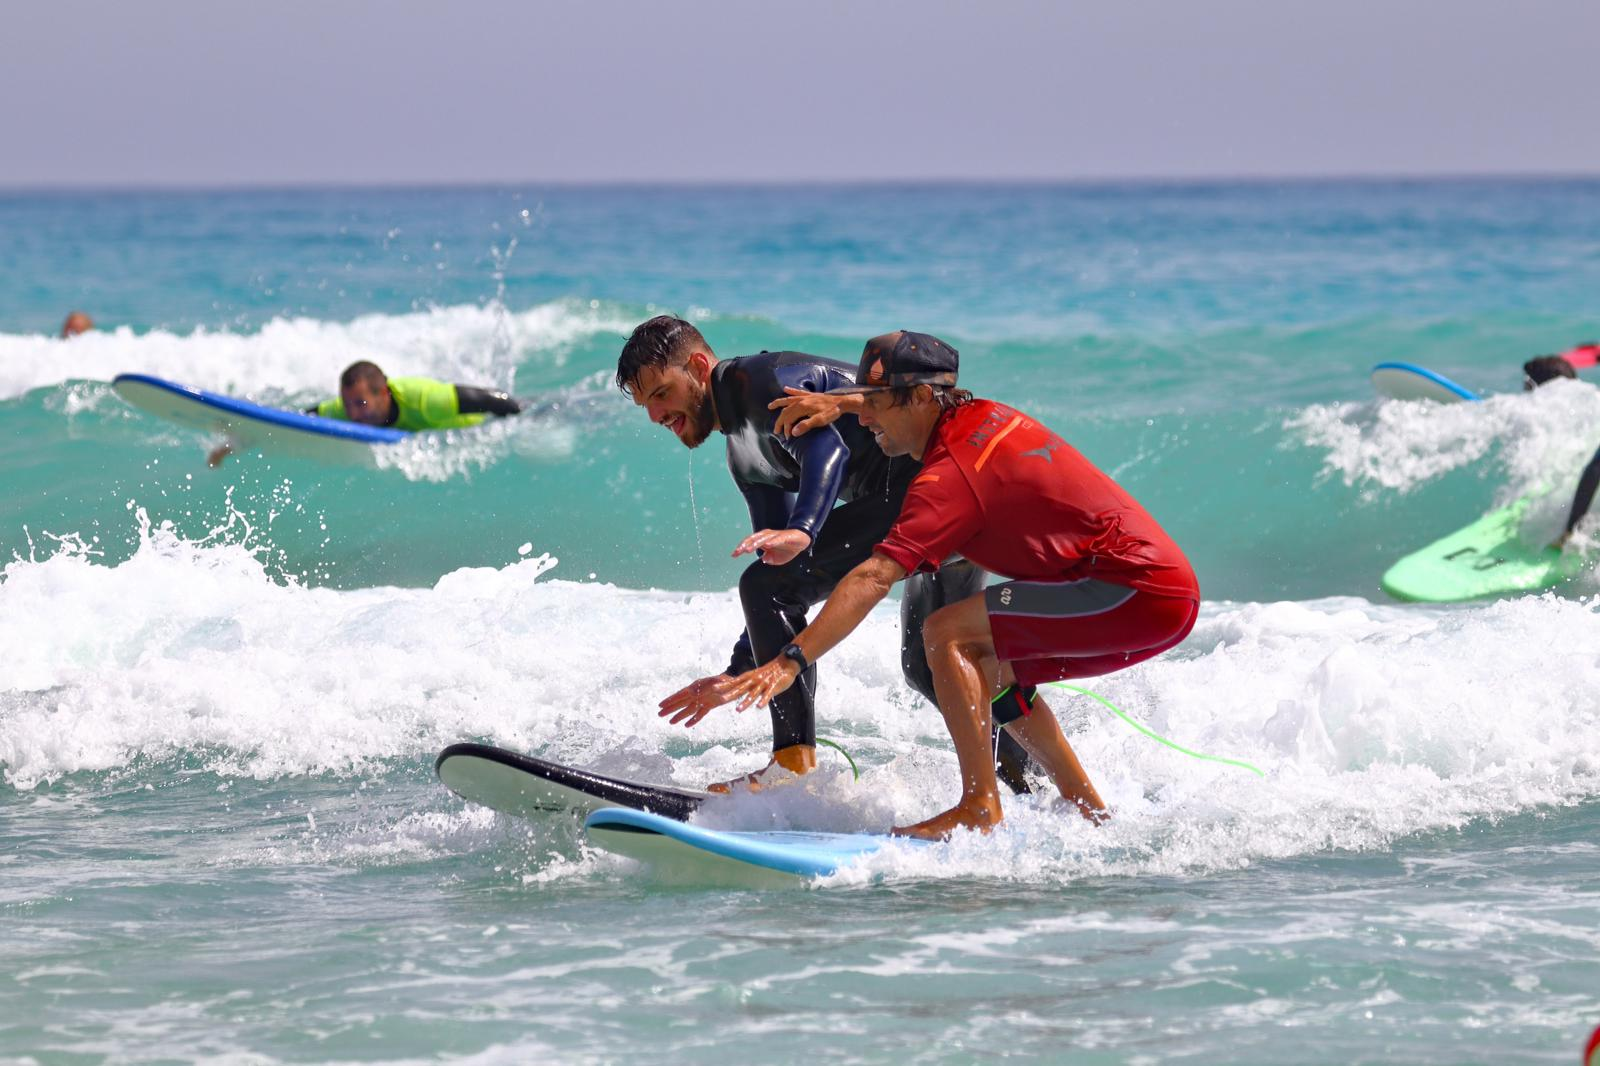 5 Common Surfing Mistakes Every Beginner Should Avoid